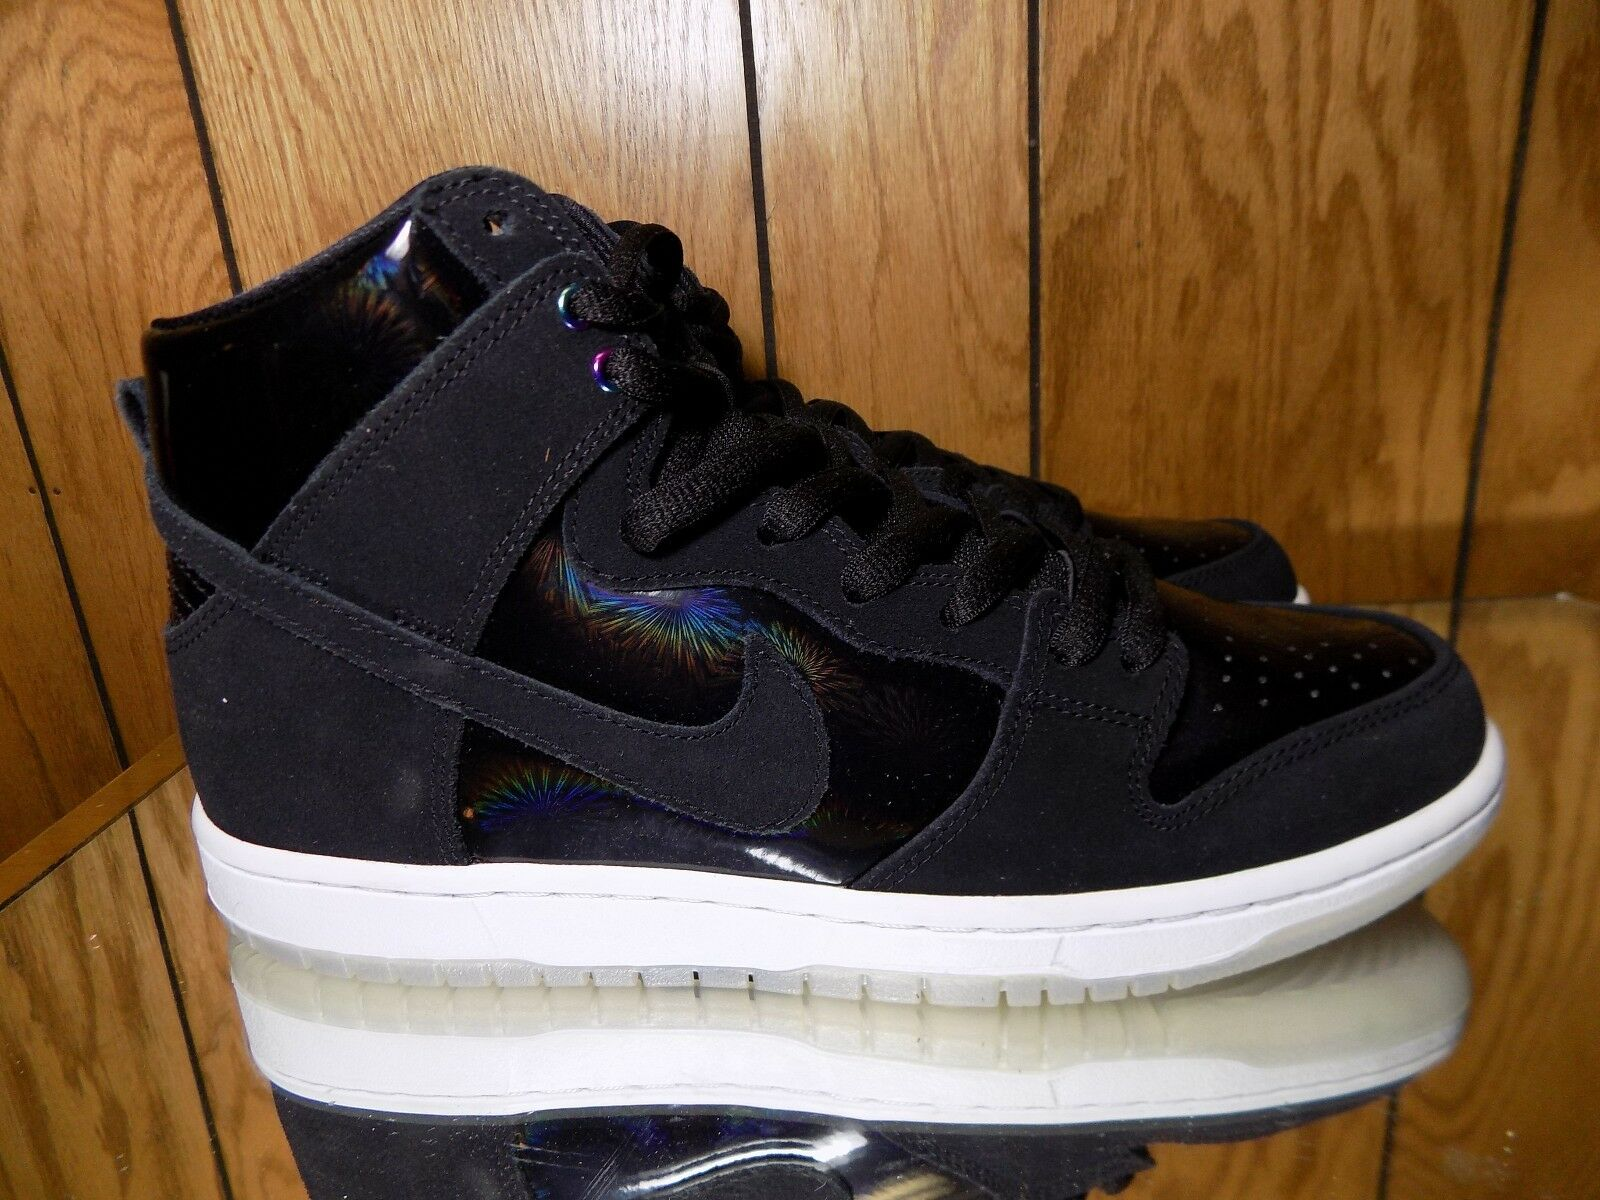 NIKE SB ZOOM DUNK HIGH PRO 854851-001 IRIDESCENT BLACK WHITE CLEAR DS SIZE: 10